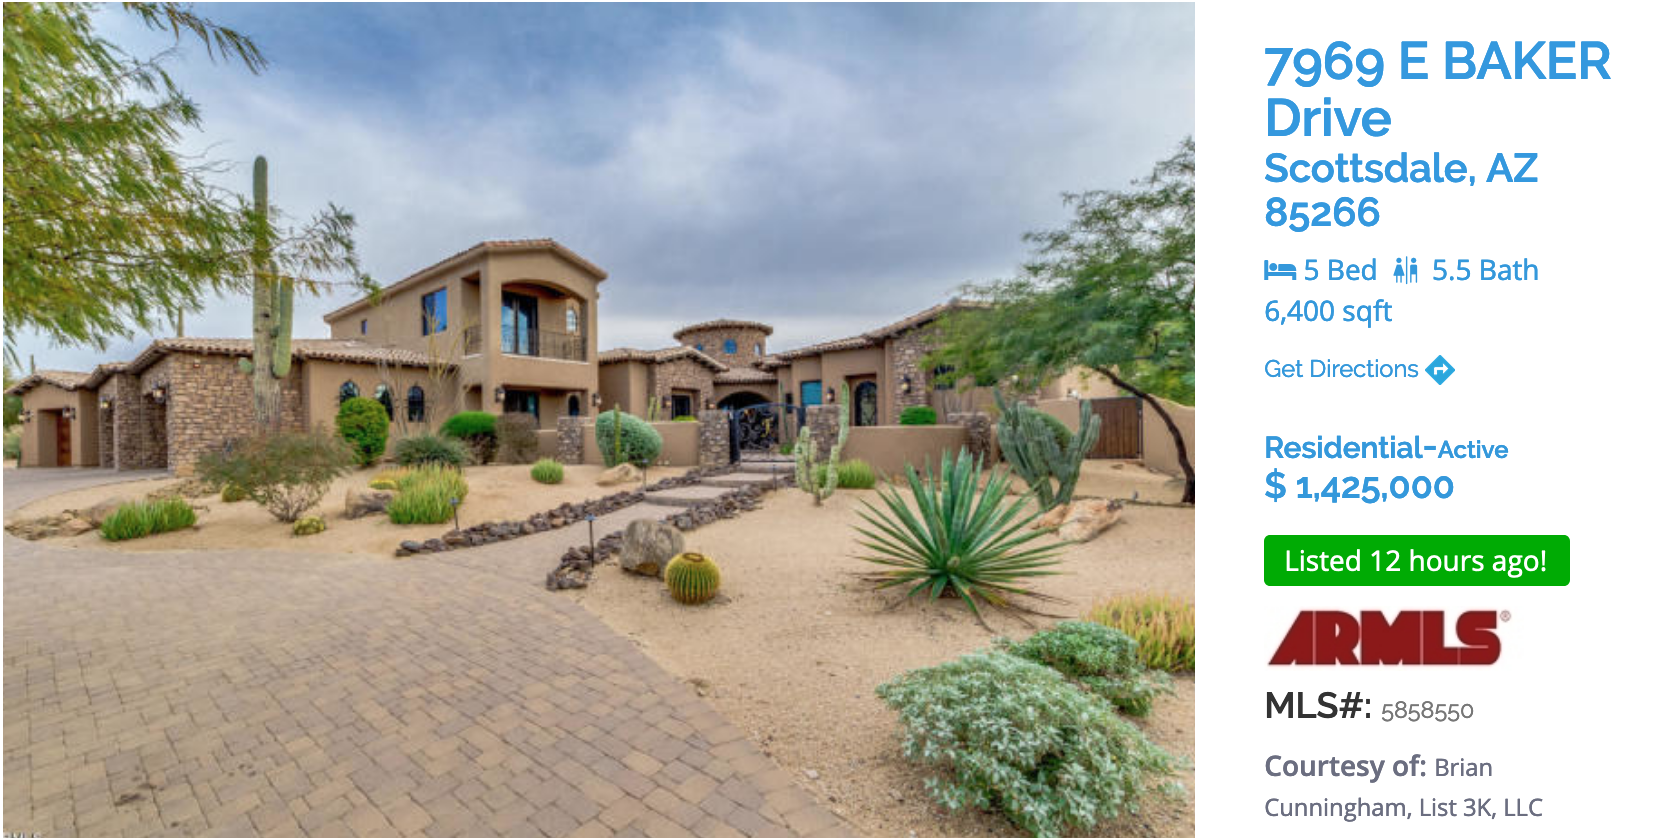 SCOTTSDALE FEATURED HOME